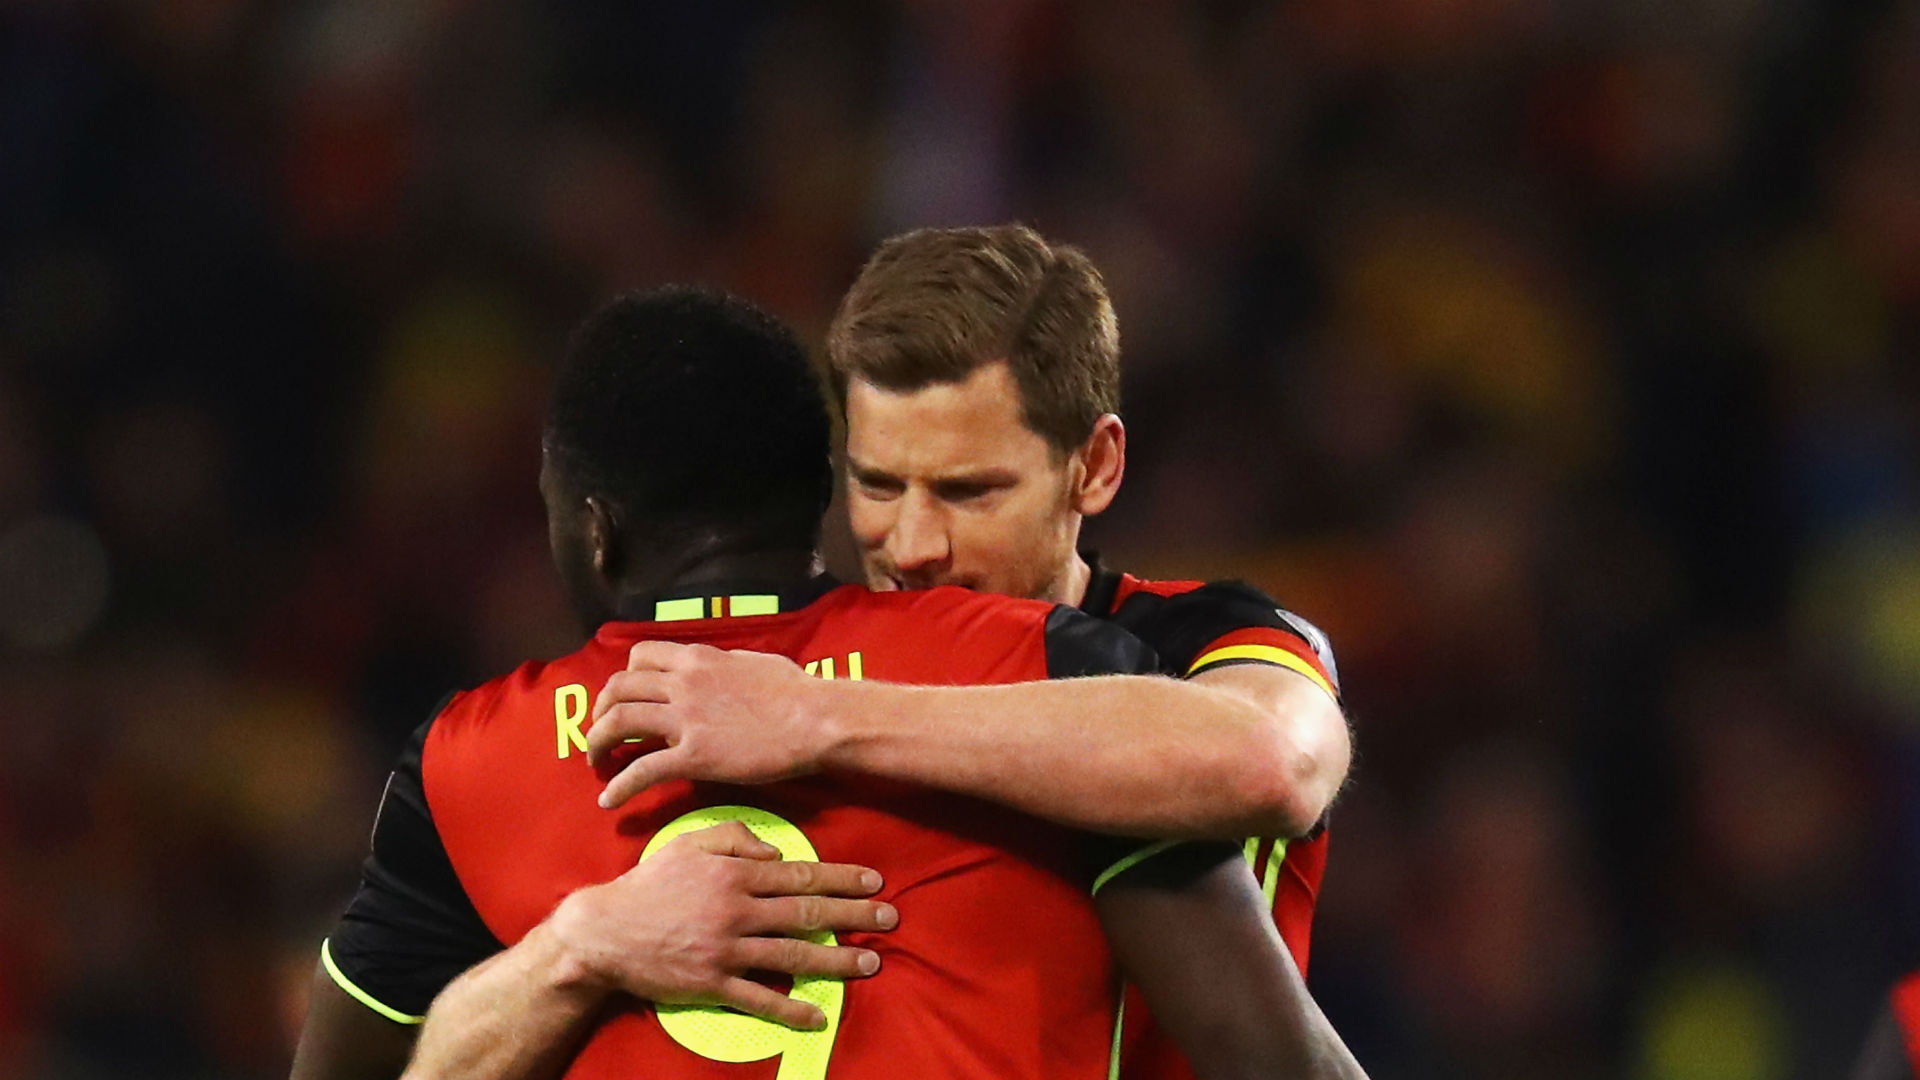 Belgium becomes first European country to qualify for 2018 World Cup